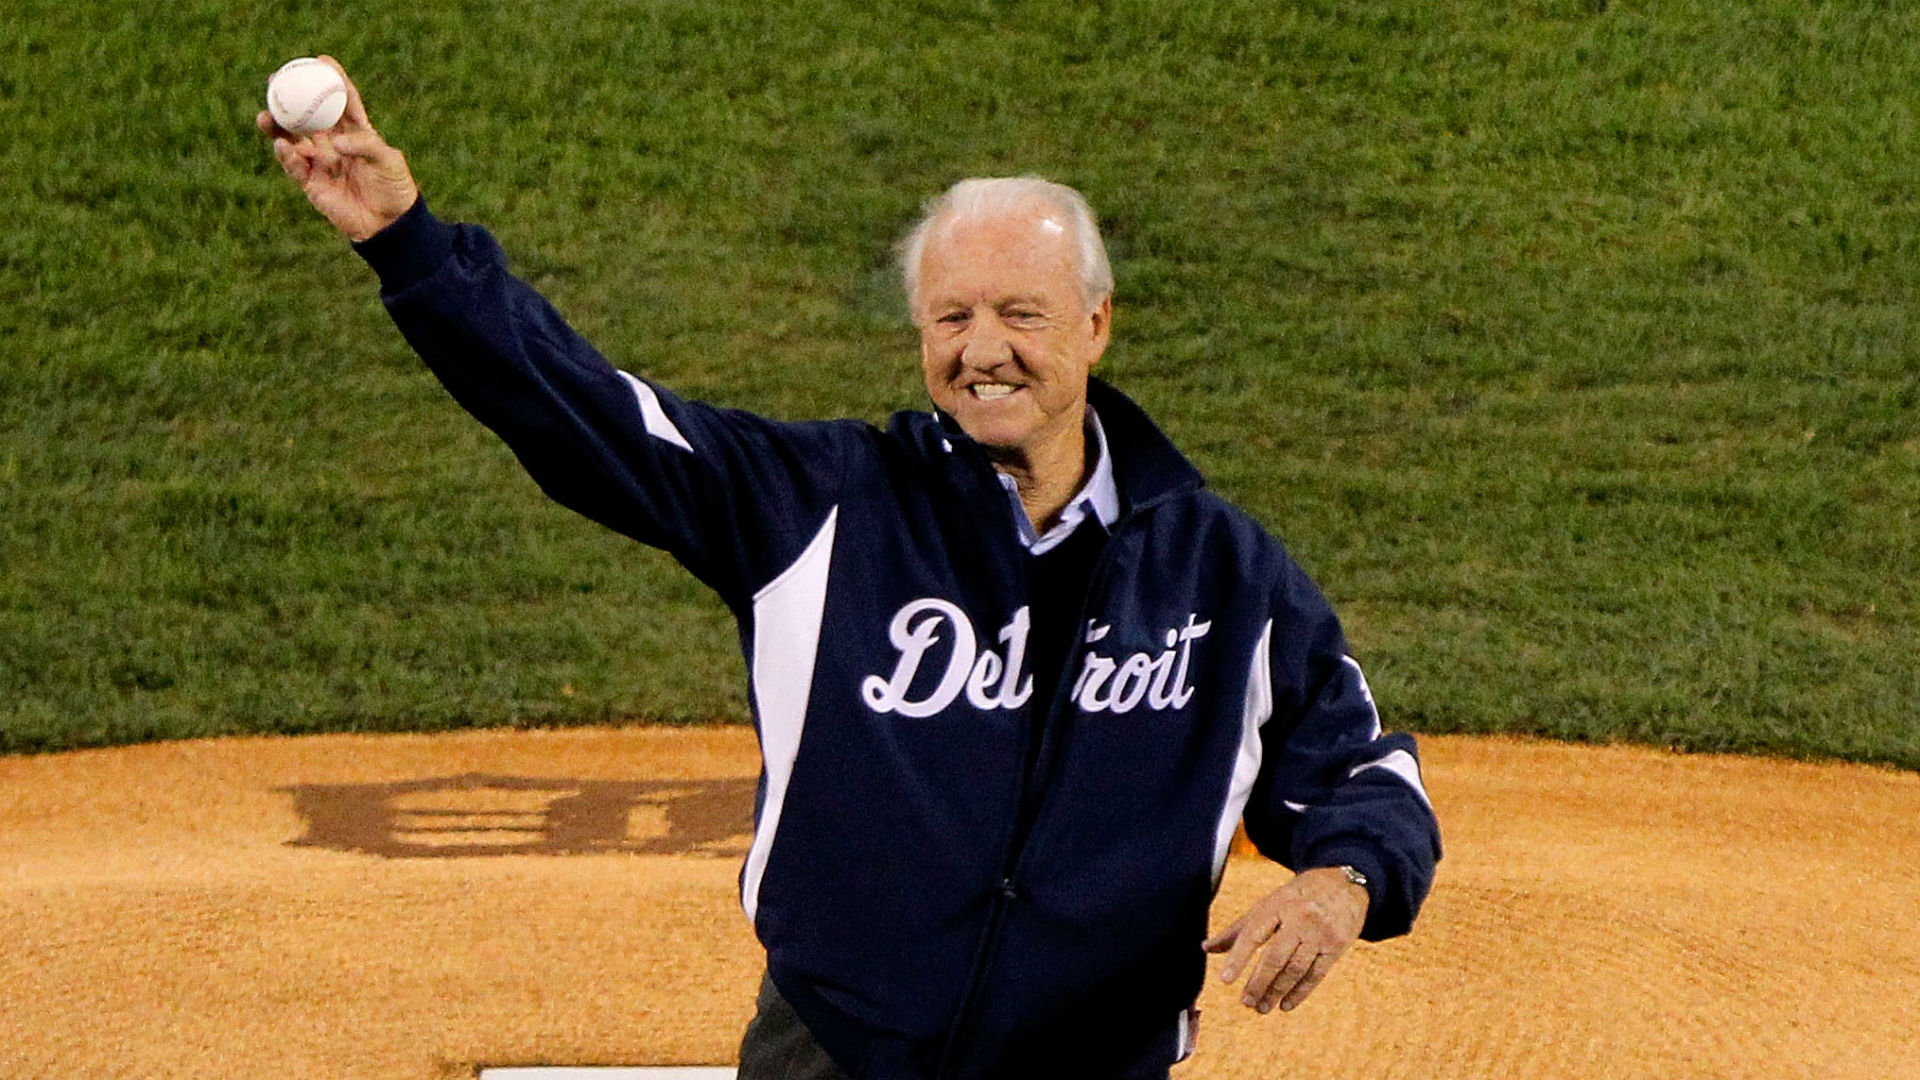 Al Kaline dies at 85: Baseball greats remember the Detroit Tigers legend on social media